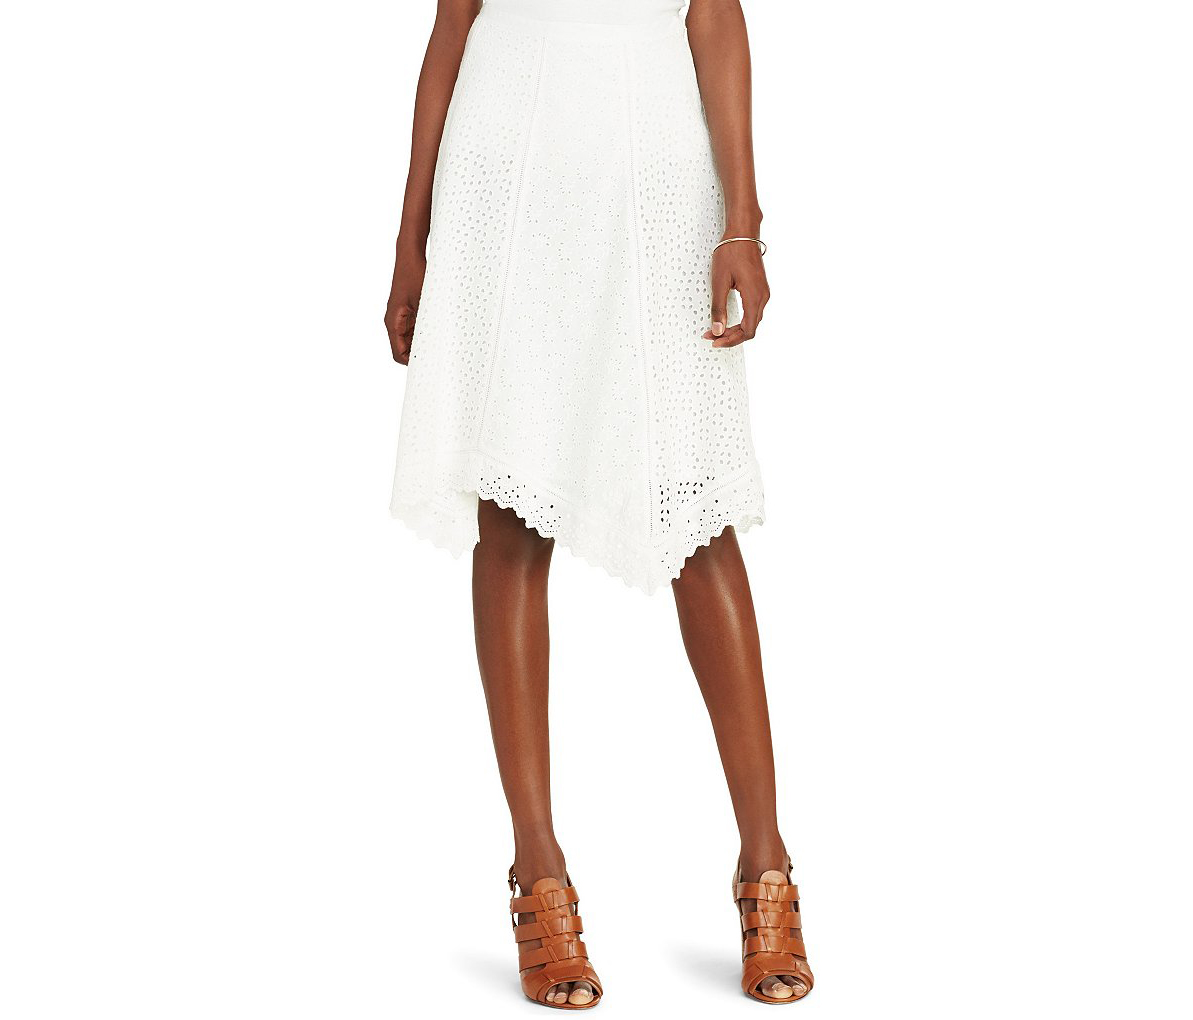 f13fa112a5e The 8 Most Fashionable Finds at Dillards Right Now   Real Simple